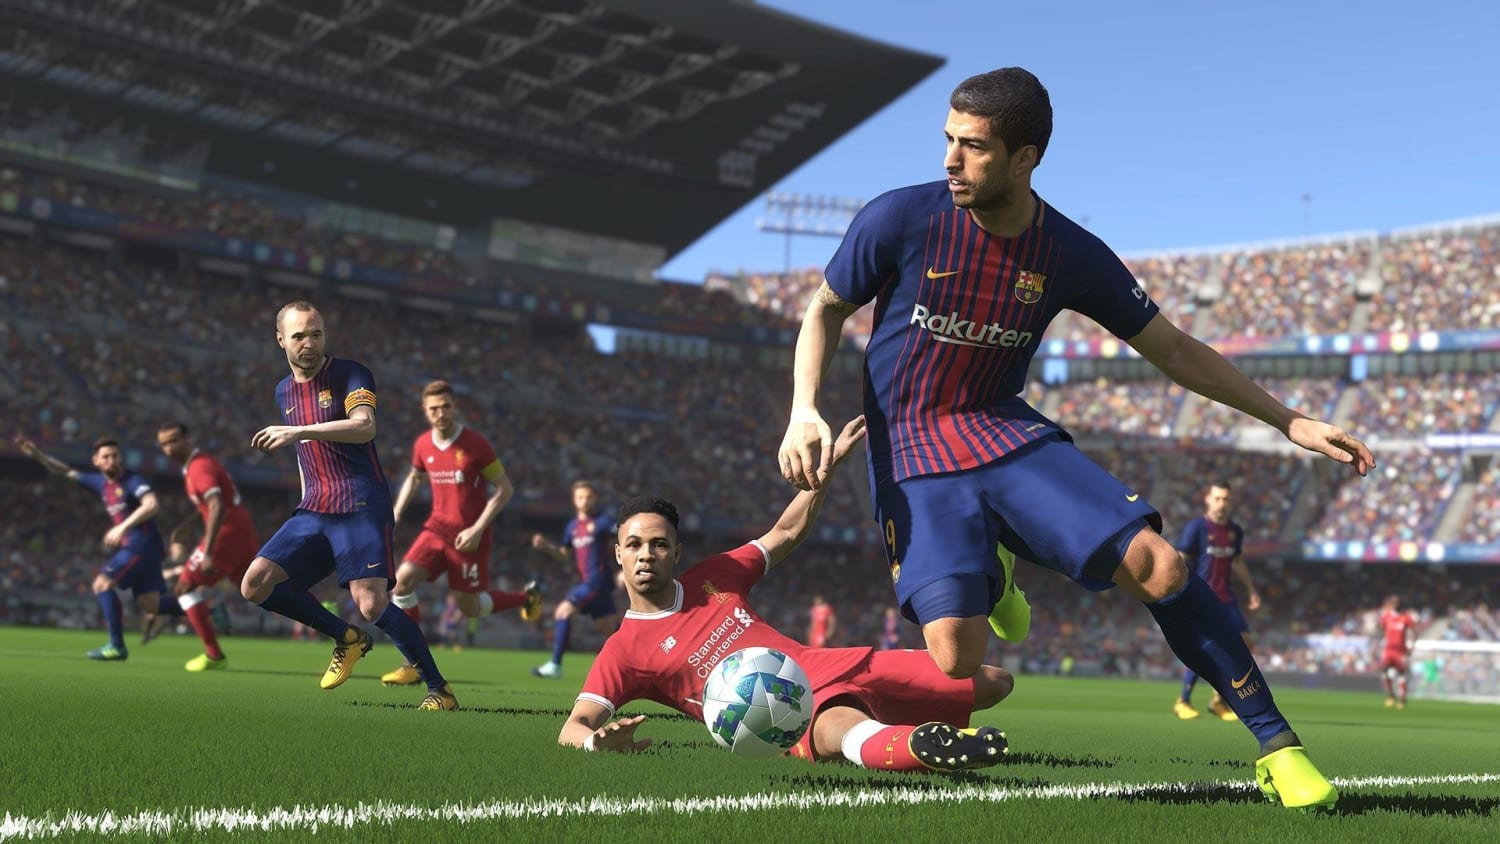 Best Free Soccer Games The Top 10 You Have To Play